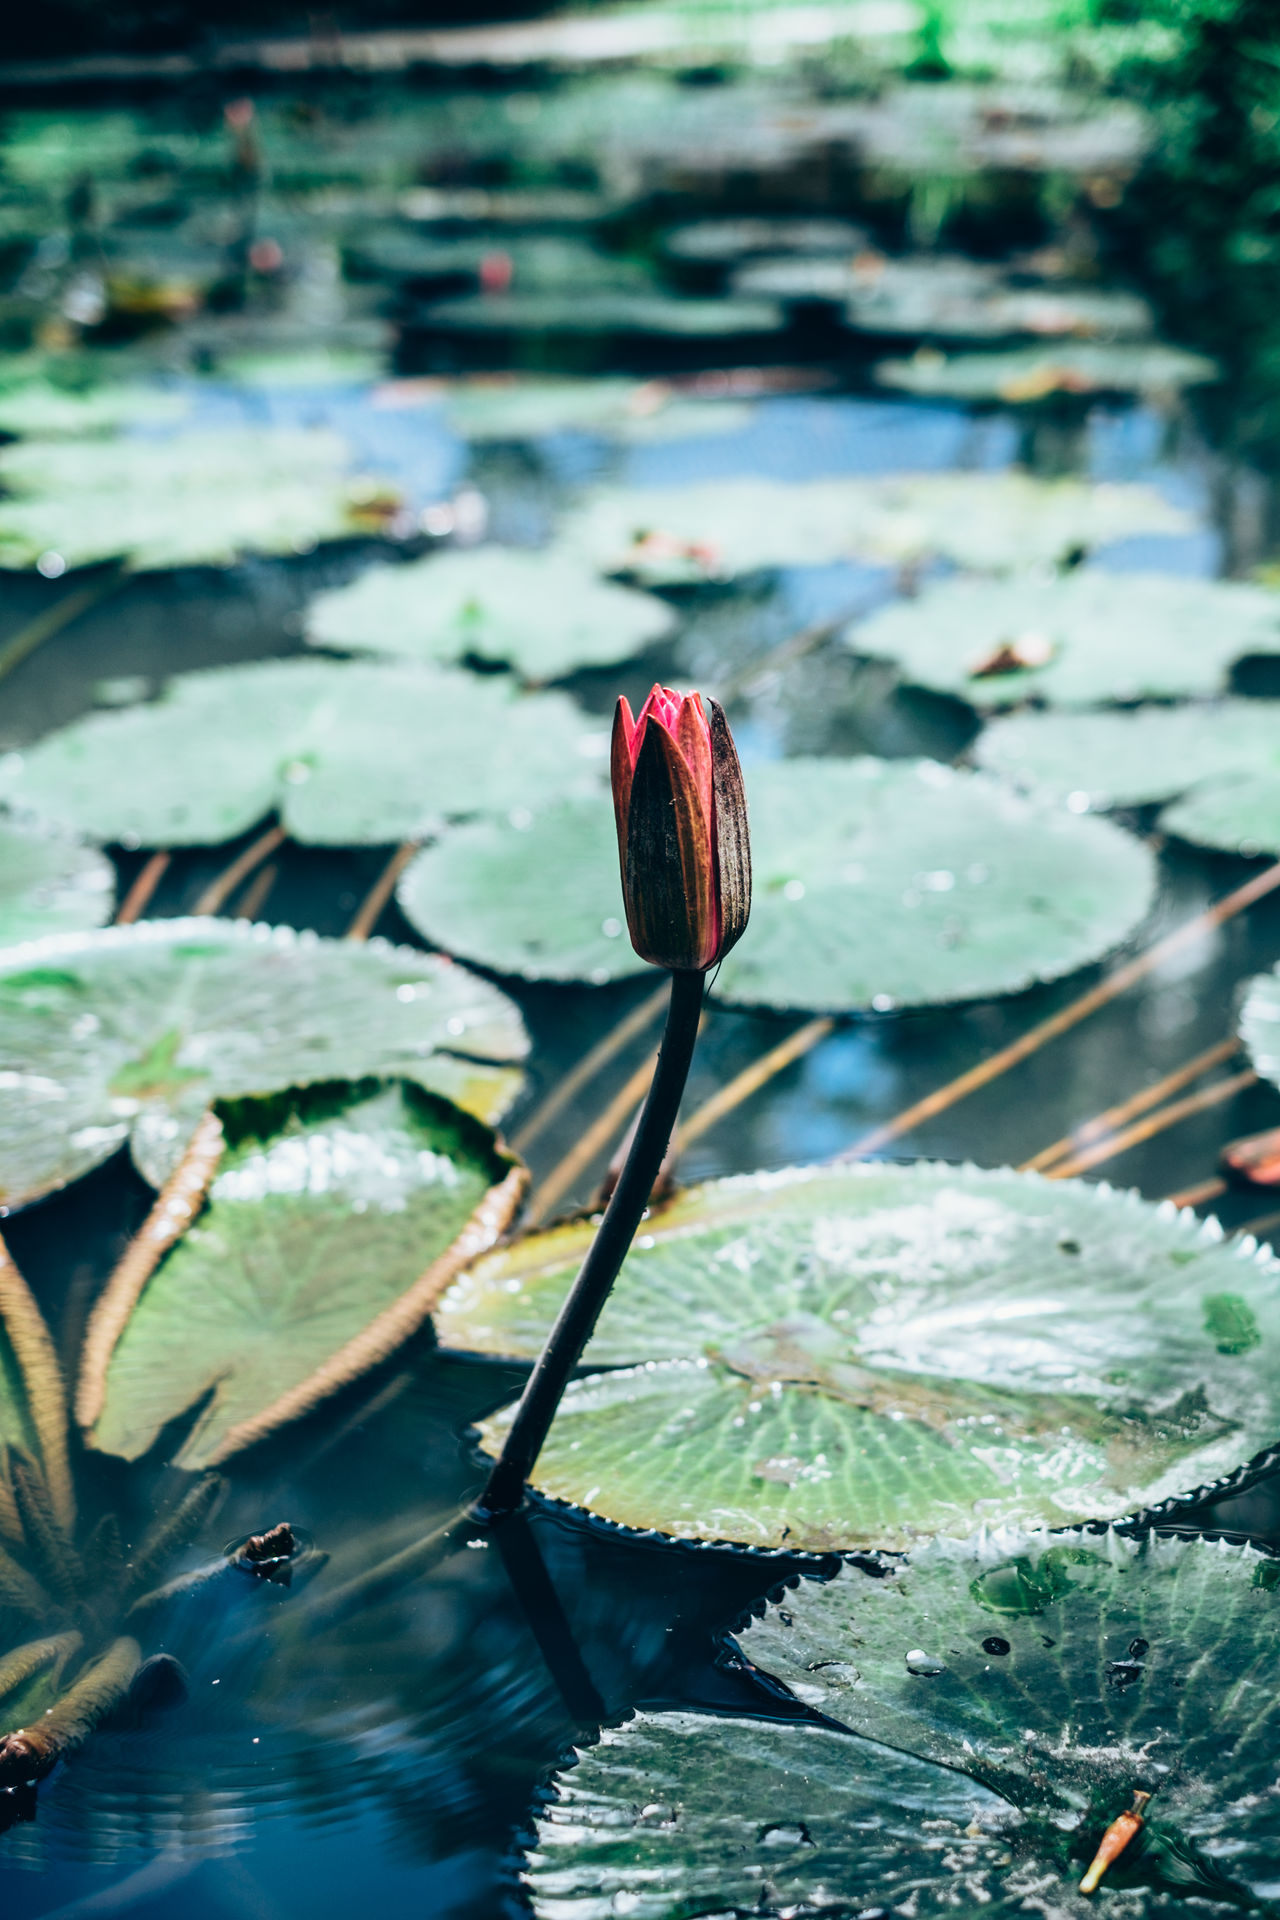 Beauty In Nature Close-up Copy Space Day Floating On Water Flower Flower Head Fragility Freshness Growth Lake Lakes  Leaf Lily Pad Lotus Lotus Water Lily Nature Outdoors Petal Plant Pond Selective Focus Water Water Lily Background